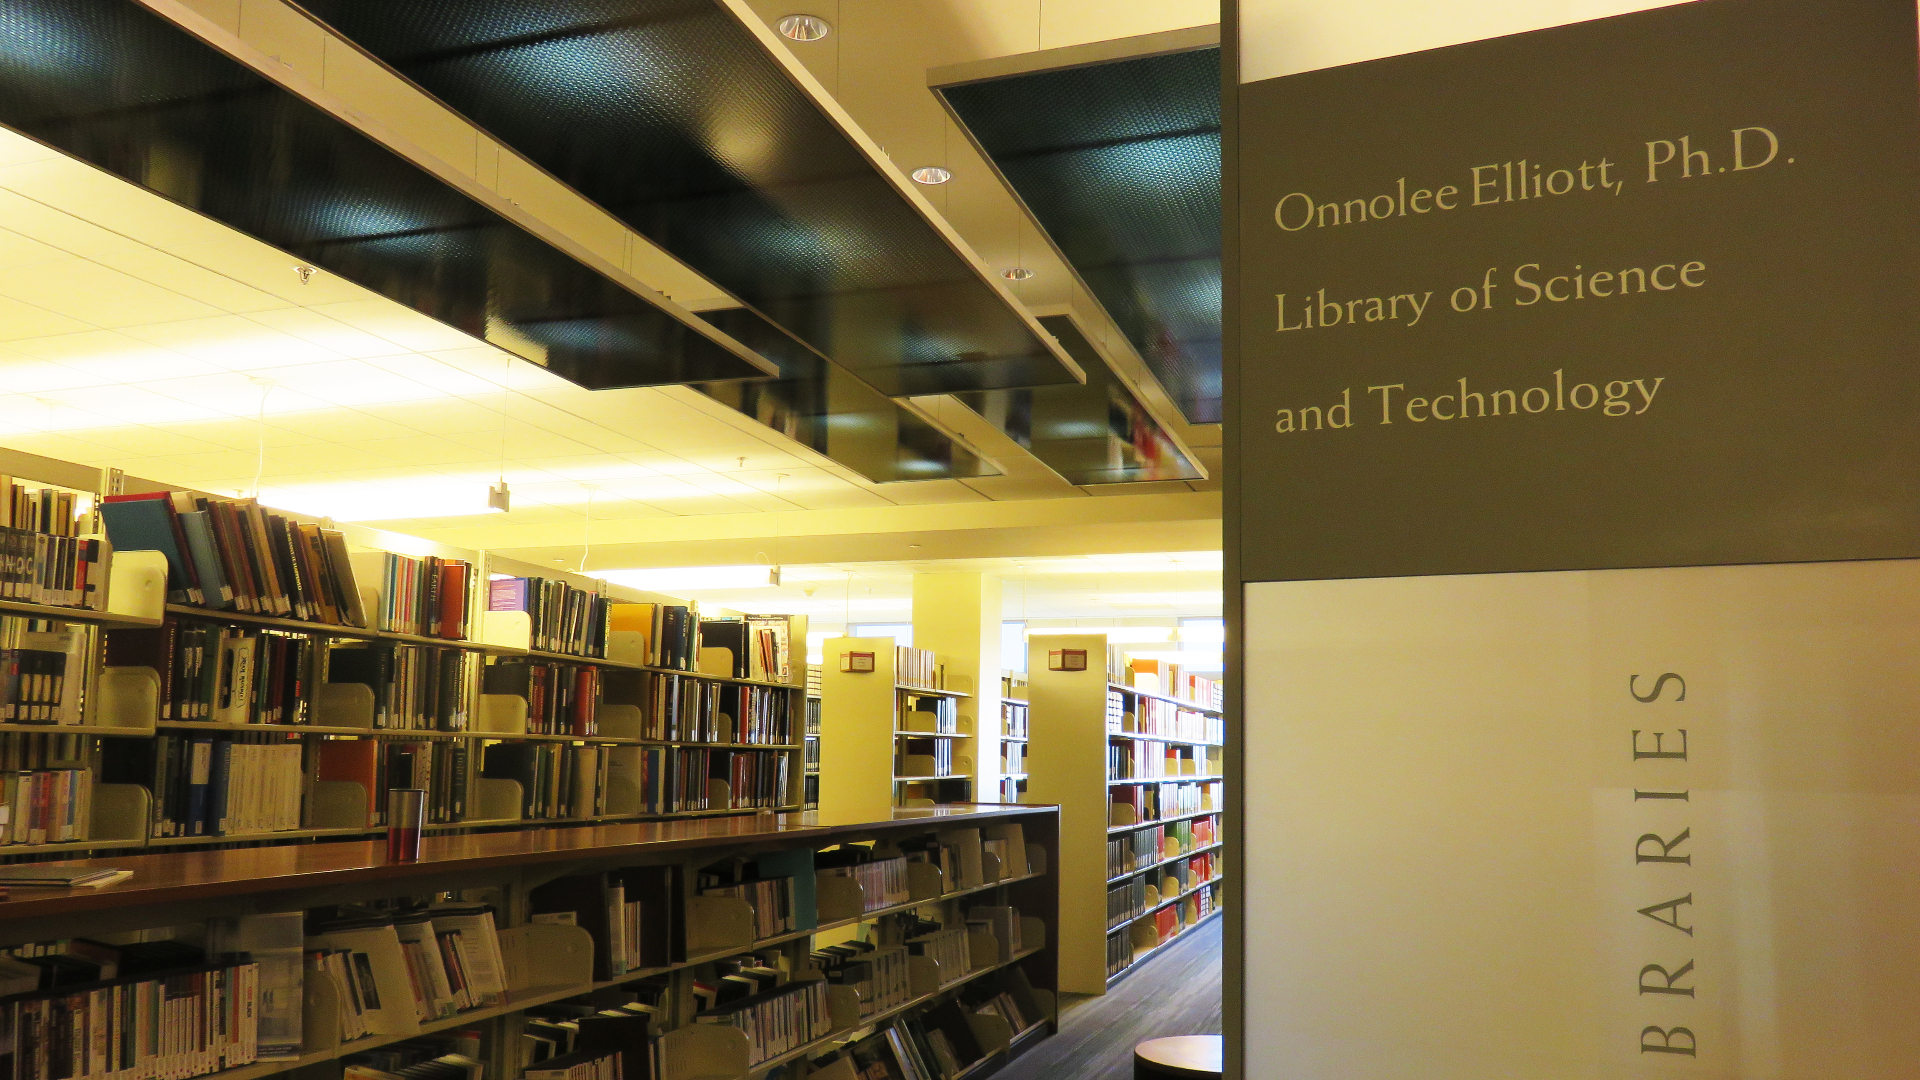 Bookshelves and the sign for the Onnolee Elliott Ph.D. Library of Science and Technology